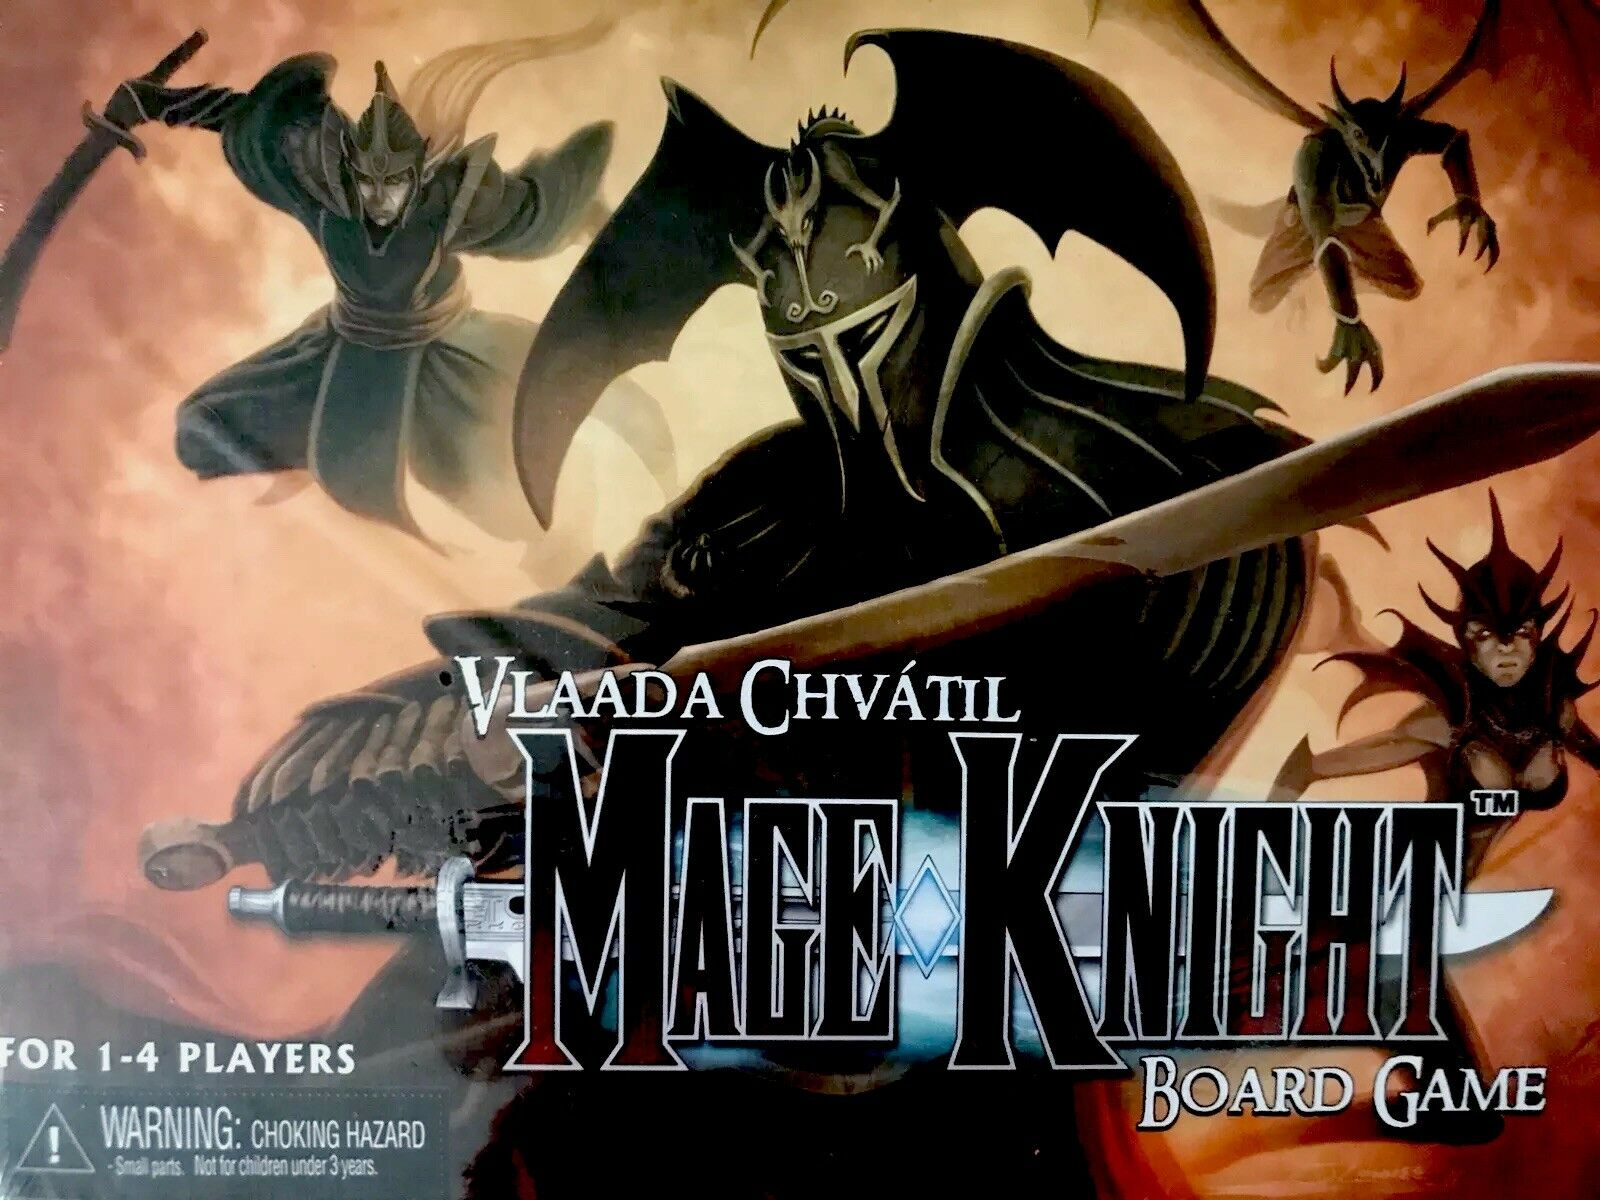 New vlaada chvàtil mage Knight board game